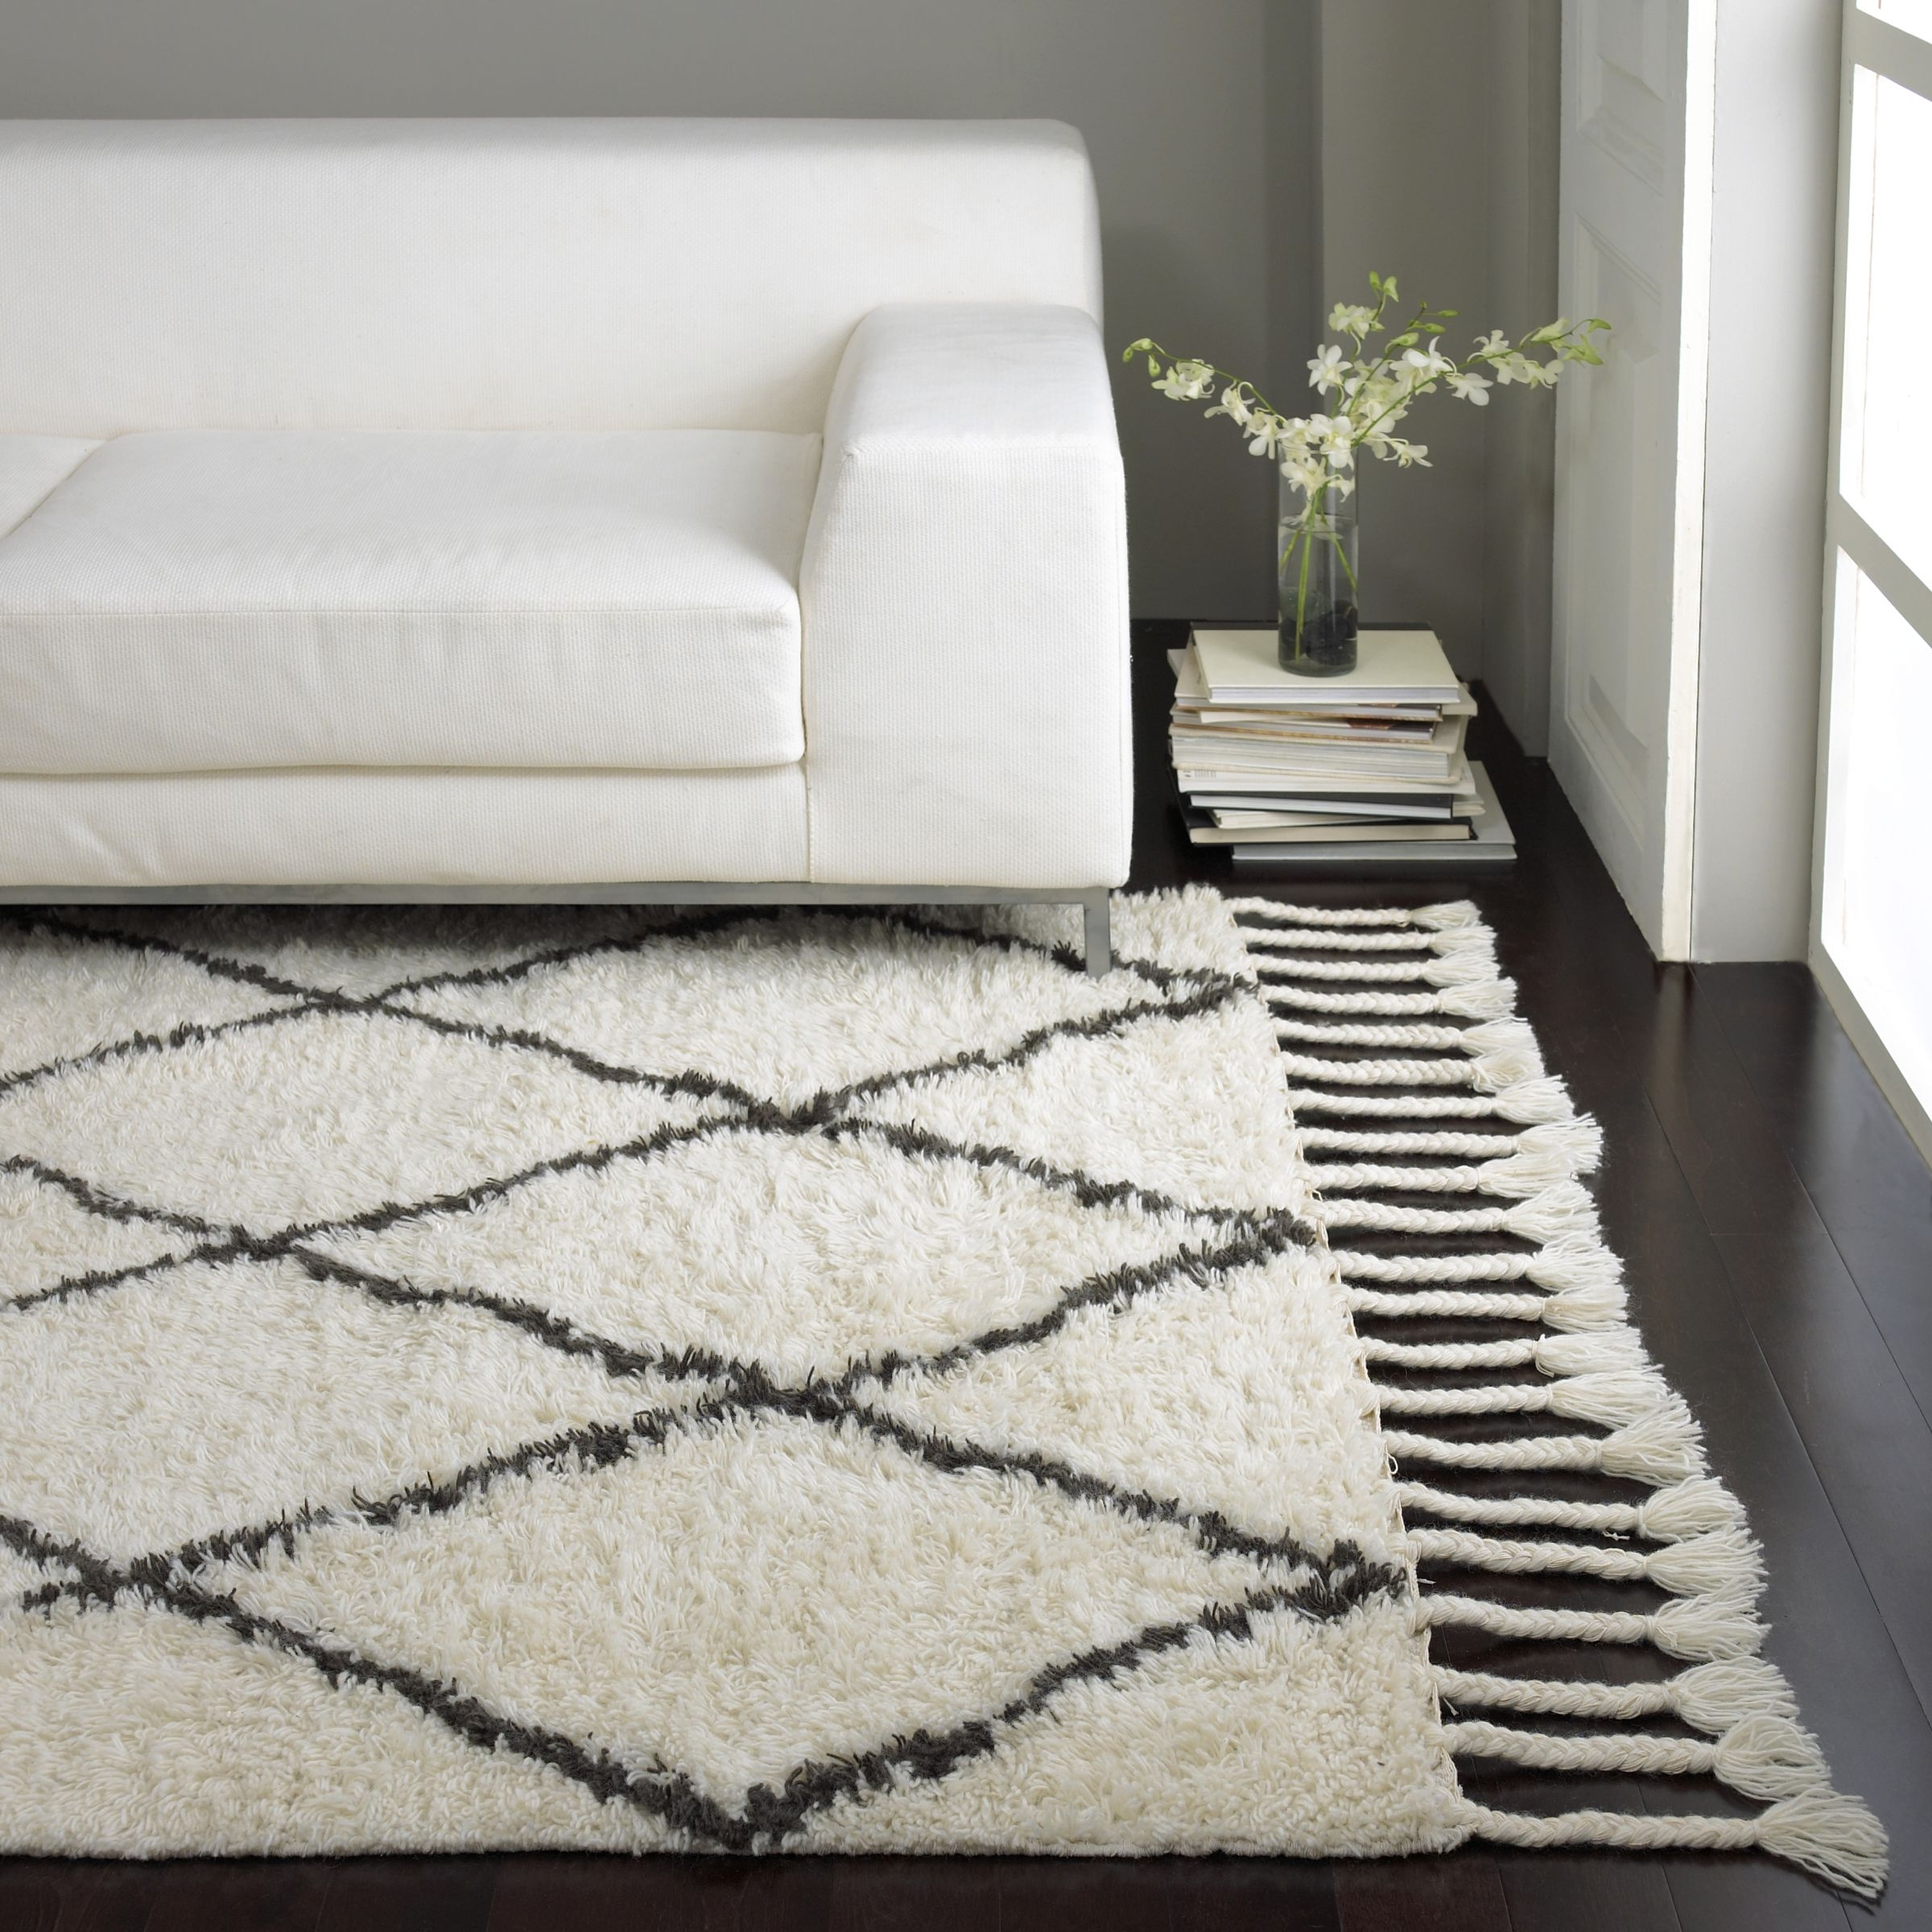 Rugs Appealing Pattern 8×10 Area Rug For Nice Floor Decor Ideas Inside Wool Area Rugs 10× (#9 of 15)